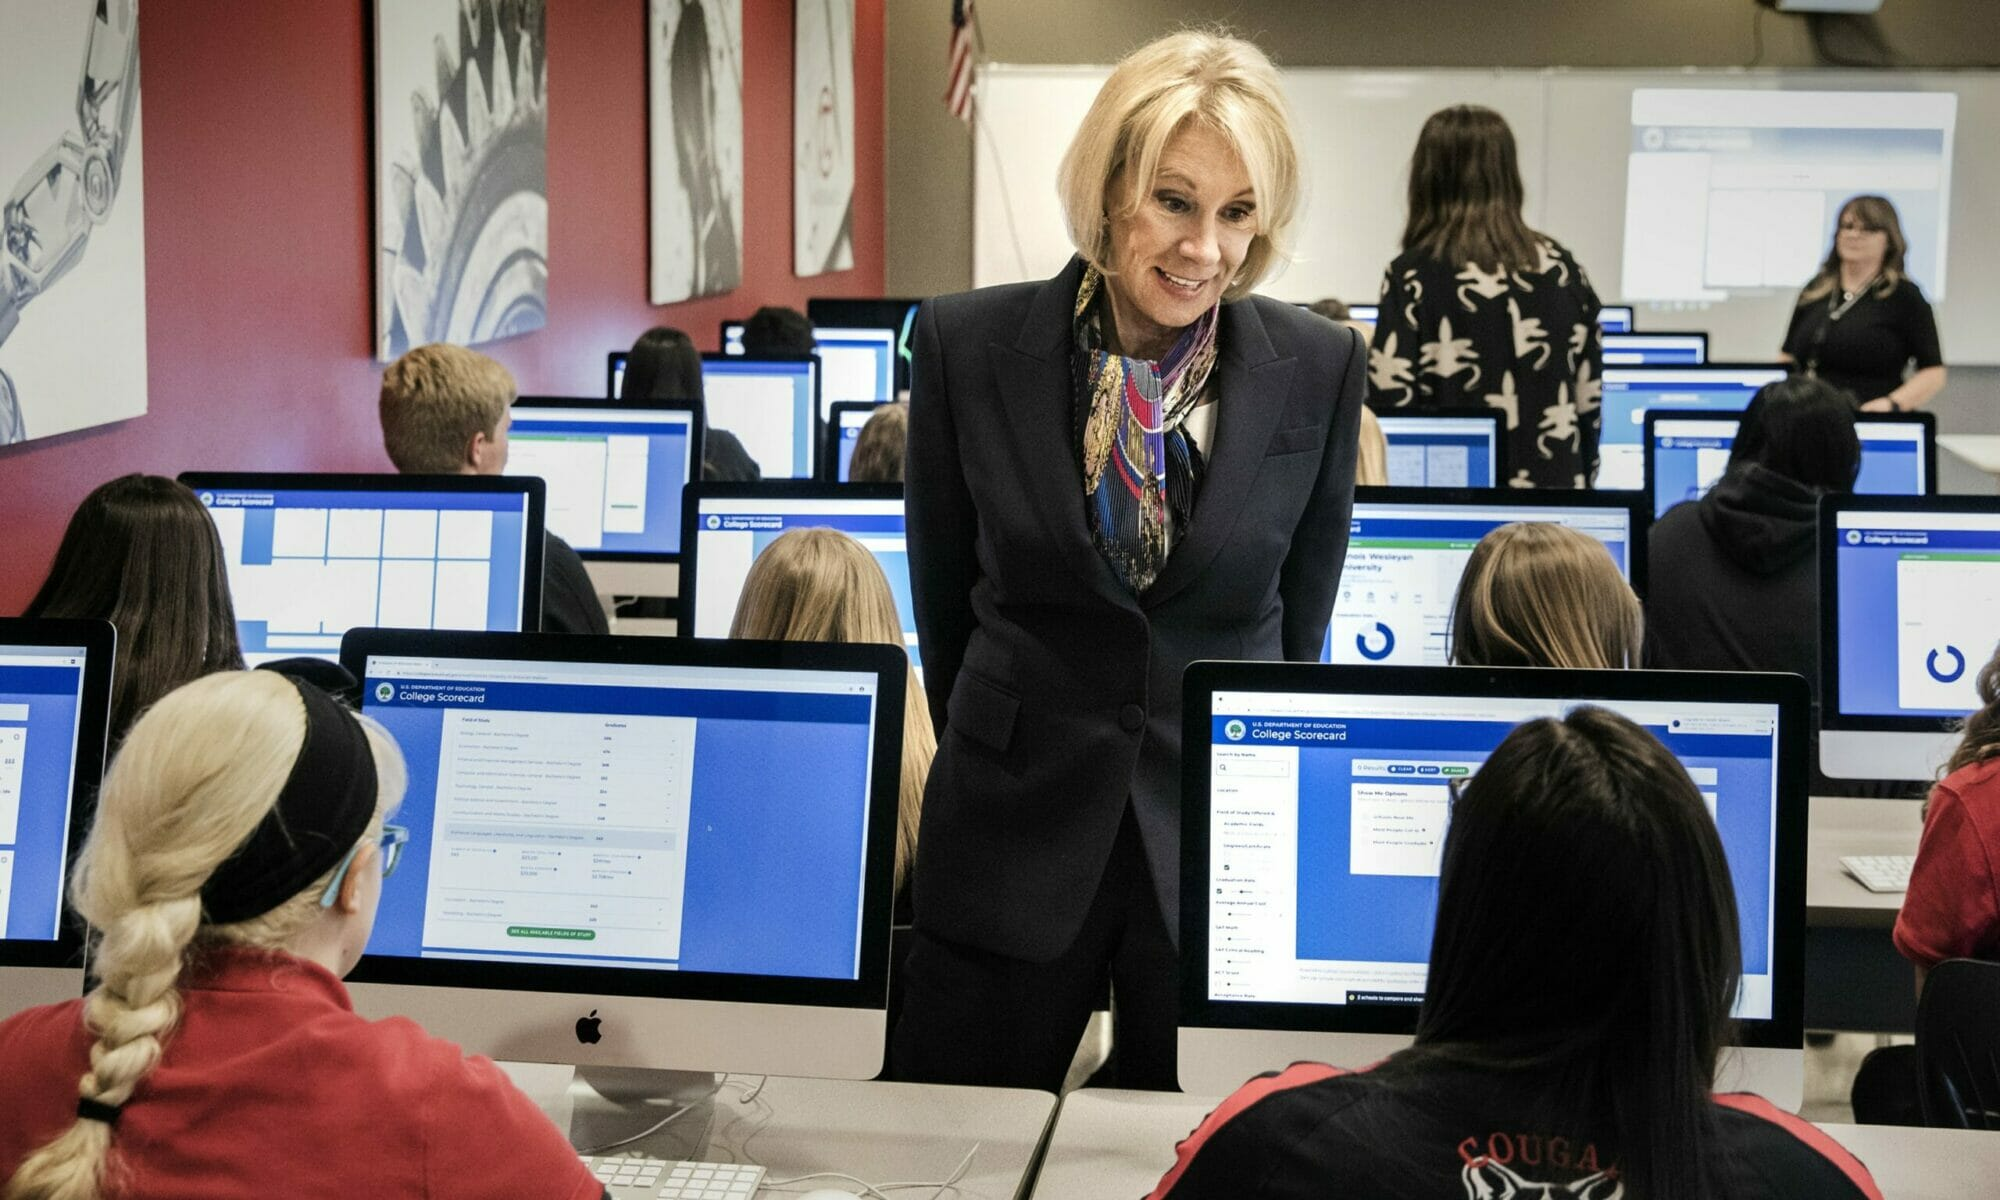 Betsy DeVos speaking with a student seated in front of a computer